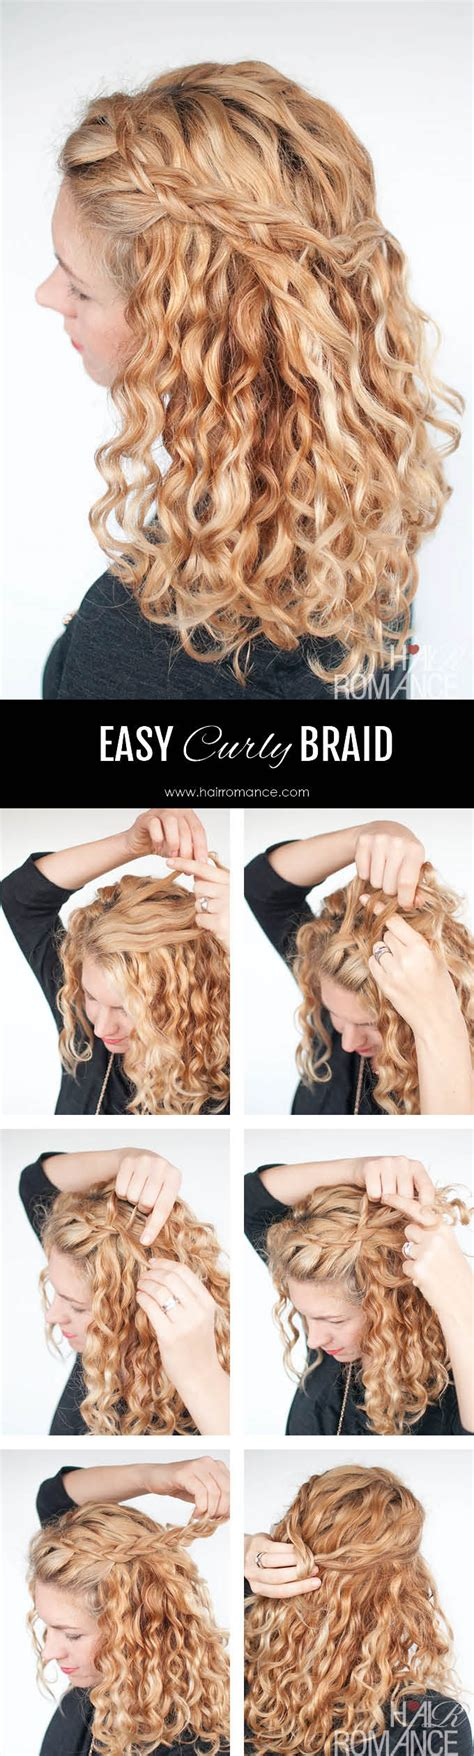 Easy Hairstyles For Curly Hair Braids by An Easy Half Up Braid Tutorial For Curly Hair Hair